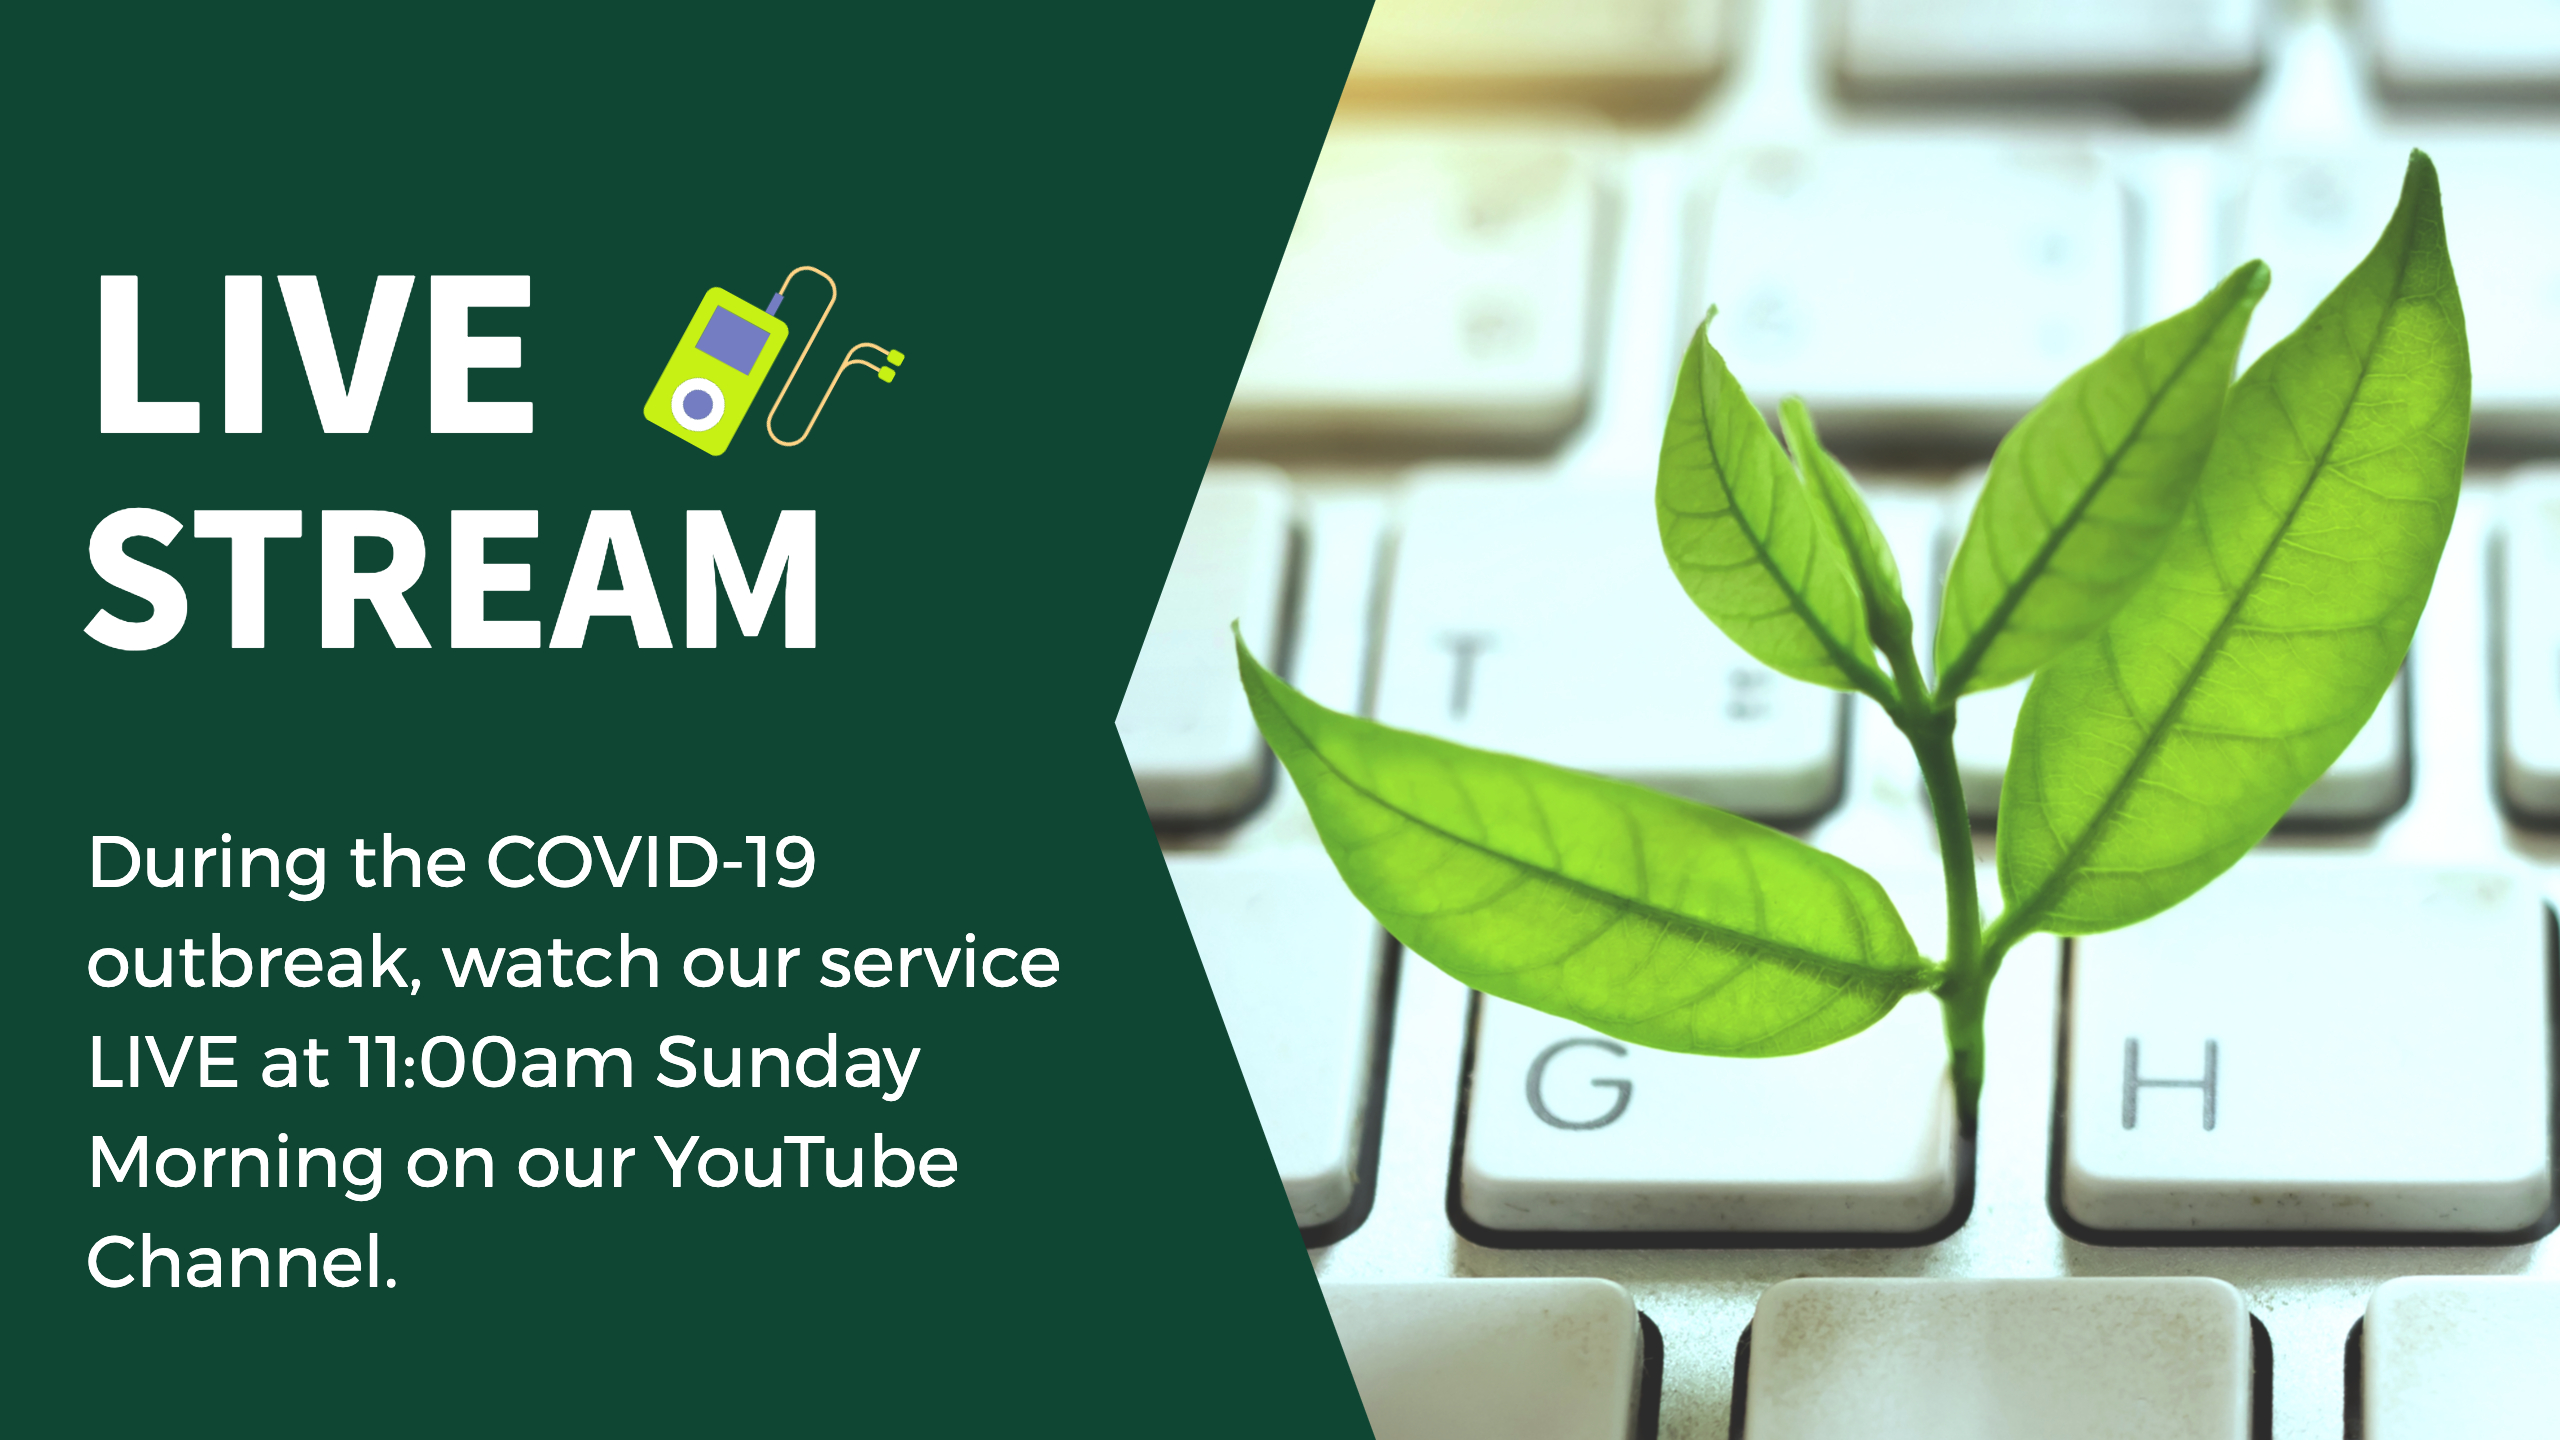 Live Stream. During the COVID-19 outbreak, watch our service LIVE at 11:00am Sunday Morning on our YouTube Channel.